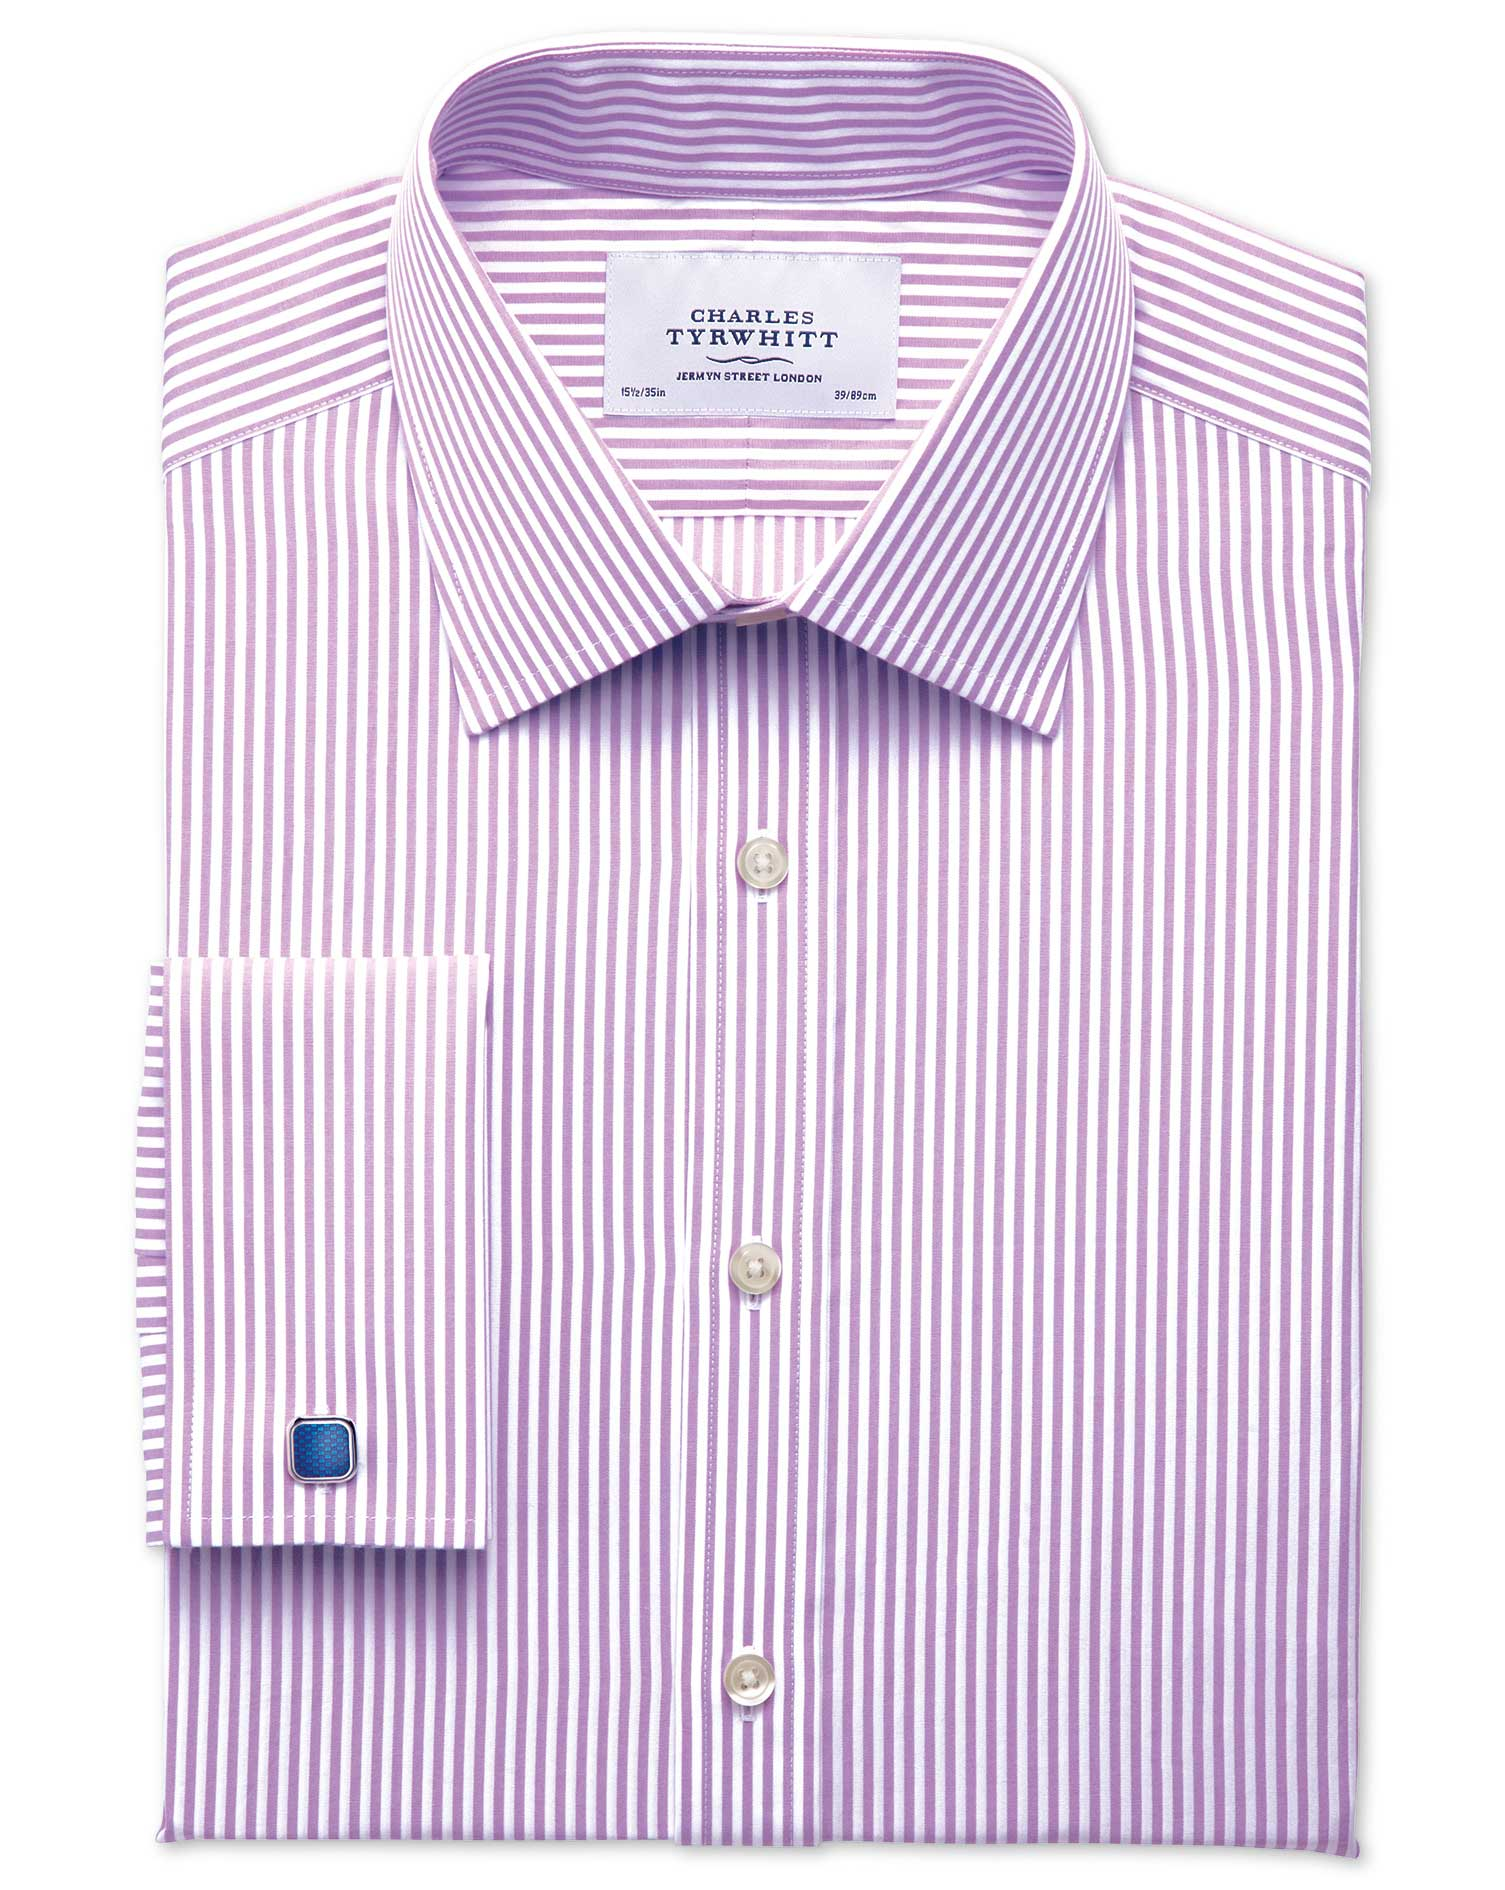 Extra Slim Fit Bengal Stripe Lilac Cotton Formal Shirt Single Cuff Size 16/34 by Charles Tyrwhitt